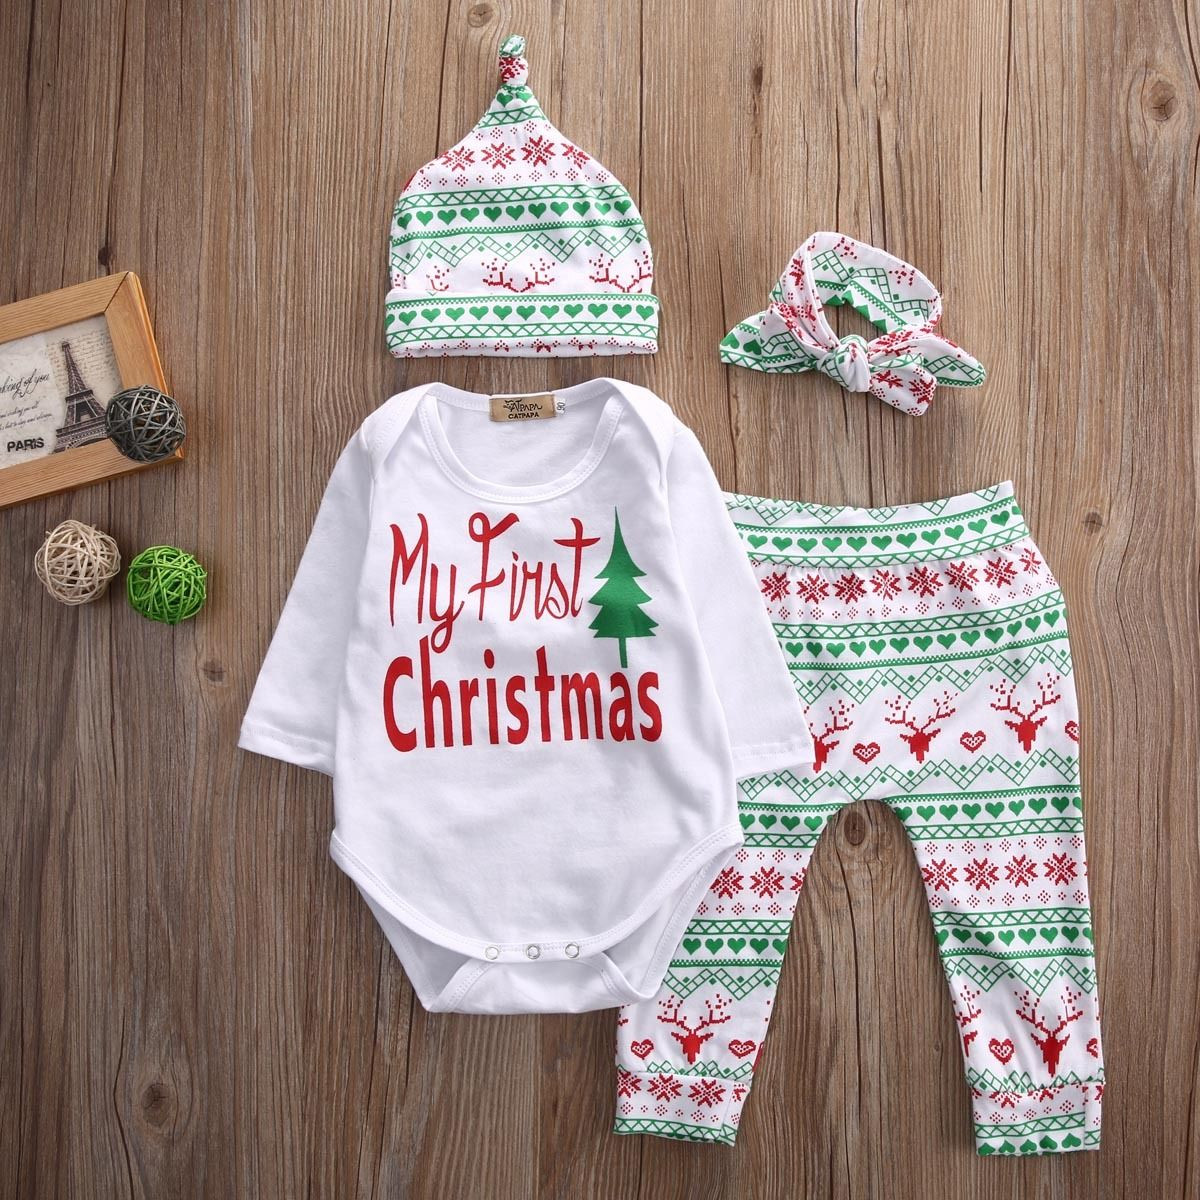 bdf1aab81 Detail Feedback Questions about My First Christmas Infant Baby Boy Girl  Outfits Clothes Romper Pants Leggings Hat Headband 4PCS Set Babies Clothes  Drop ...